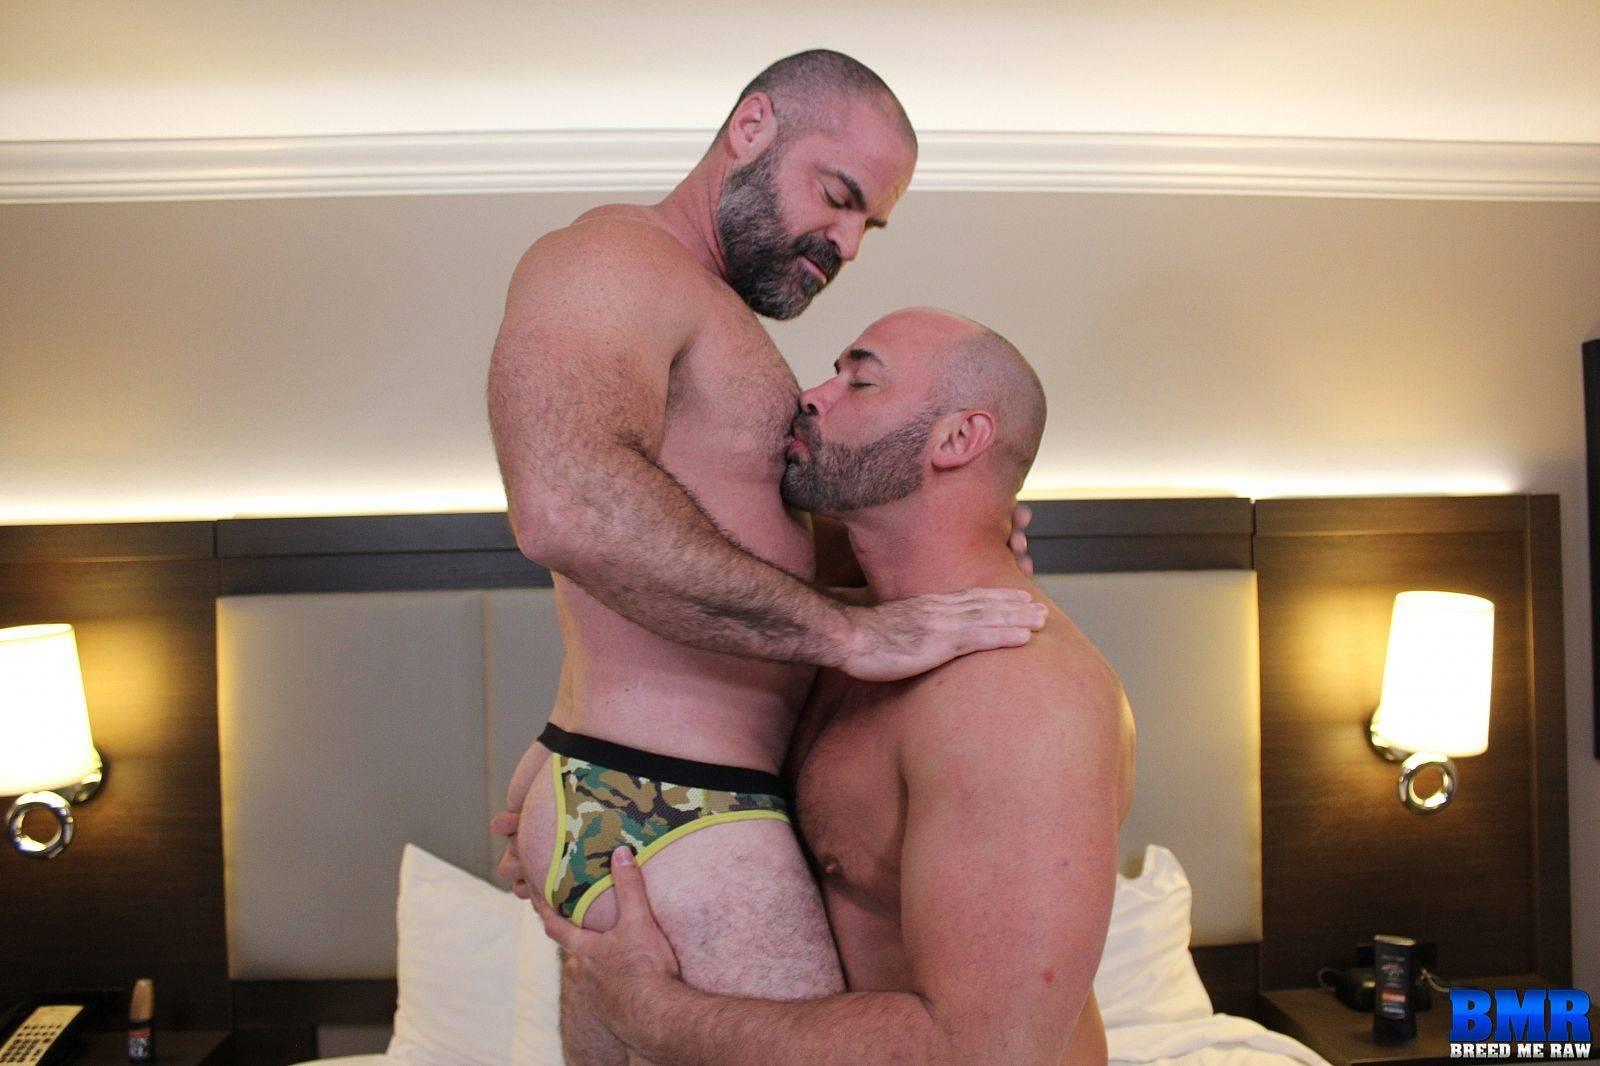 Breed-Me-Raw-Bishop-Angus-and-Tyler-Reed-Hairy-Muscle-Daddies-Breeding-03 Hairy Muscle Daddies Tyler Reed and Bishop Angus Breed